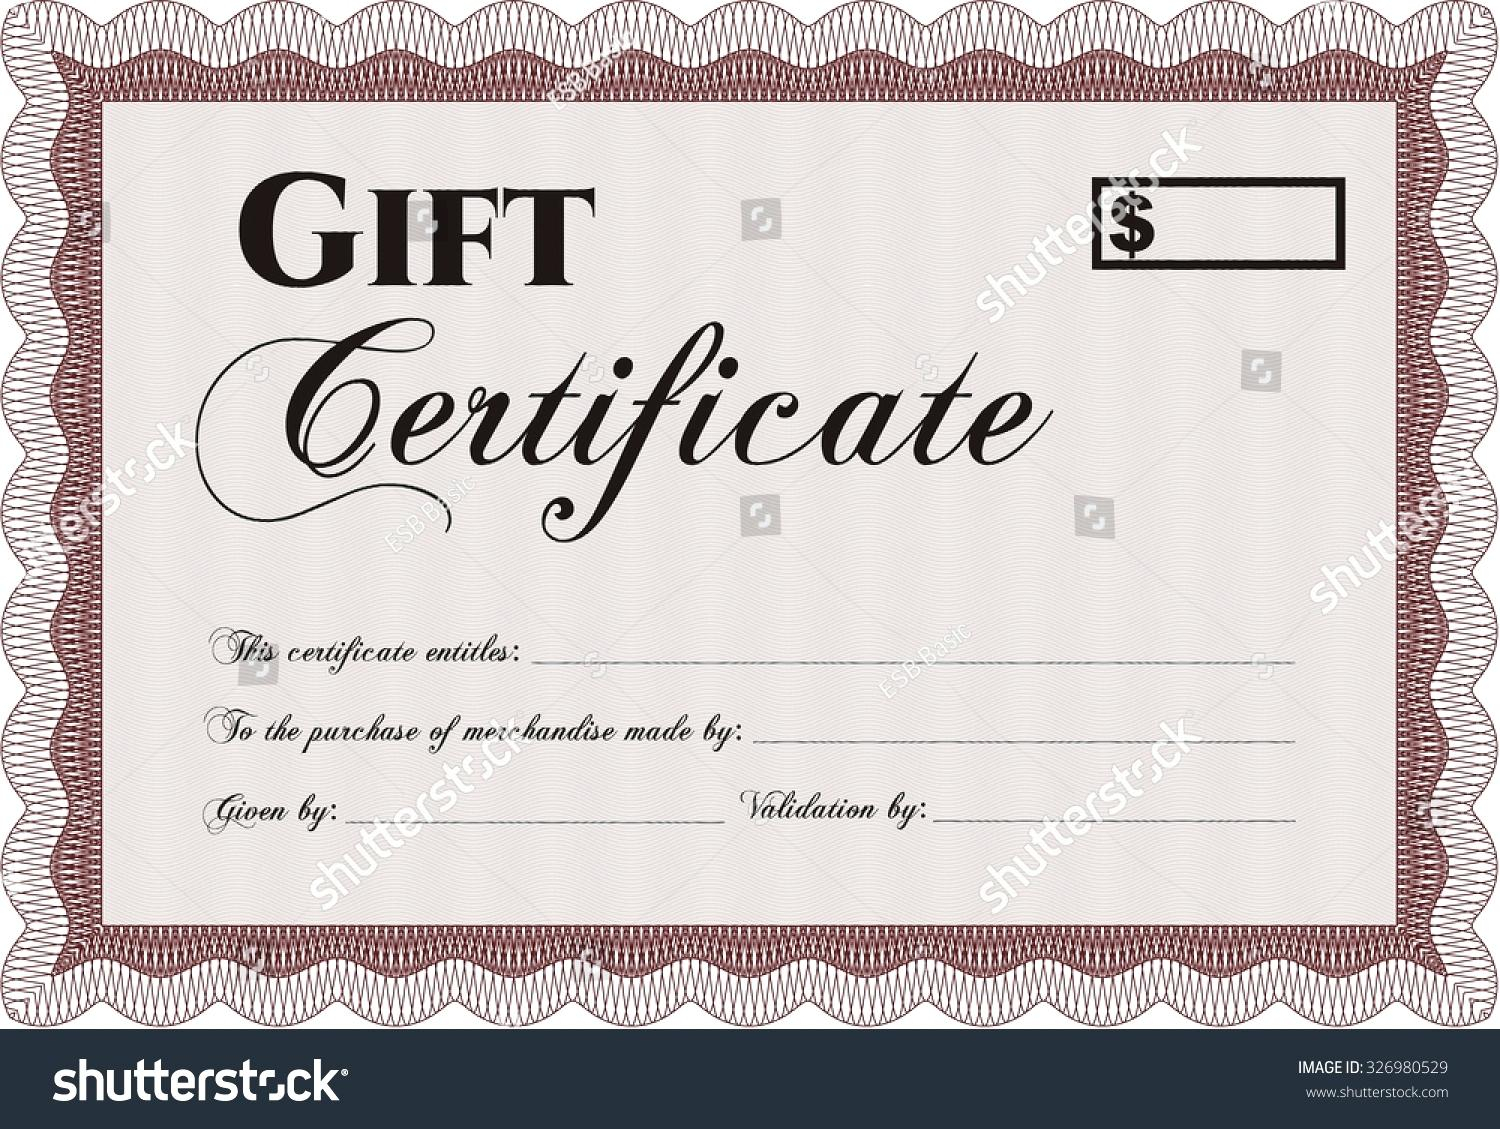 Bunch Ideas For This Certificate Entitles The Bearer Inside This Entitles The Bearer To Template Certificate